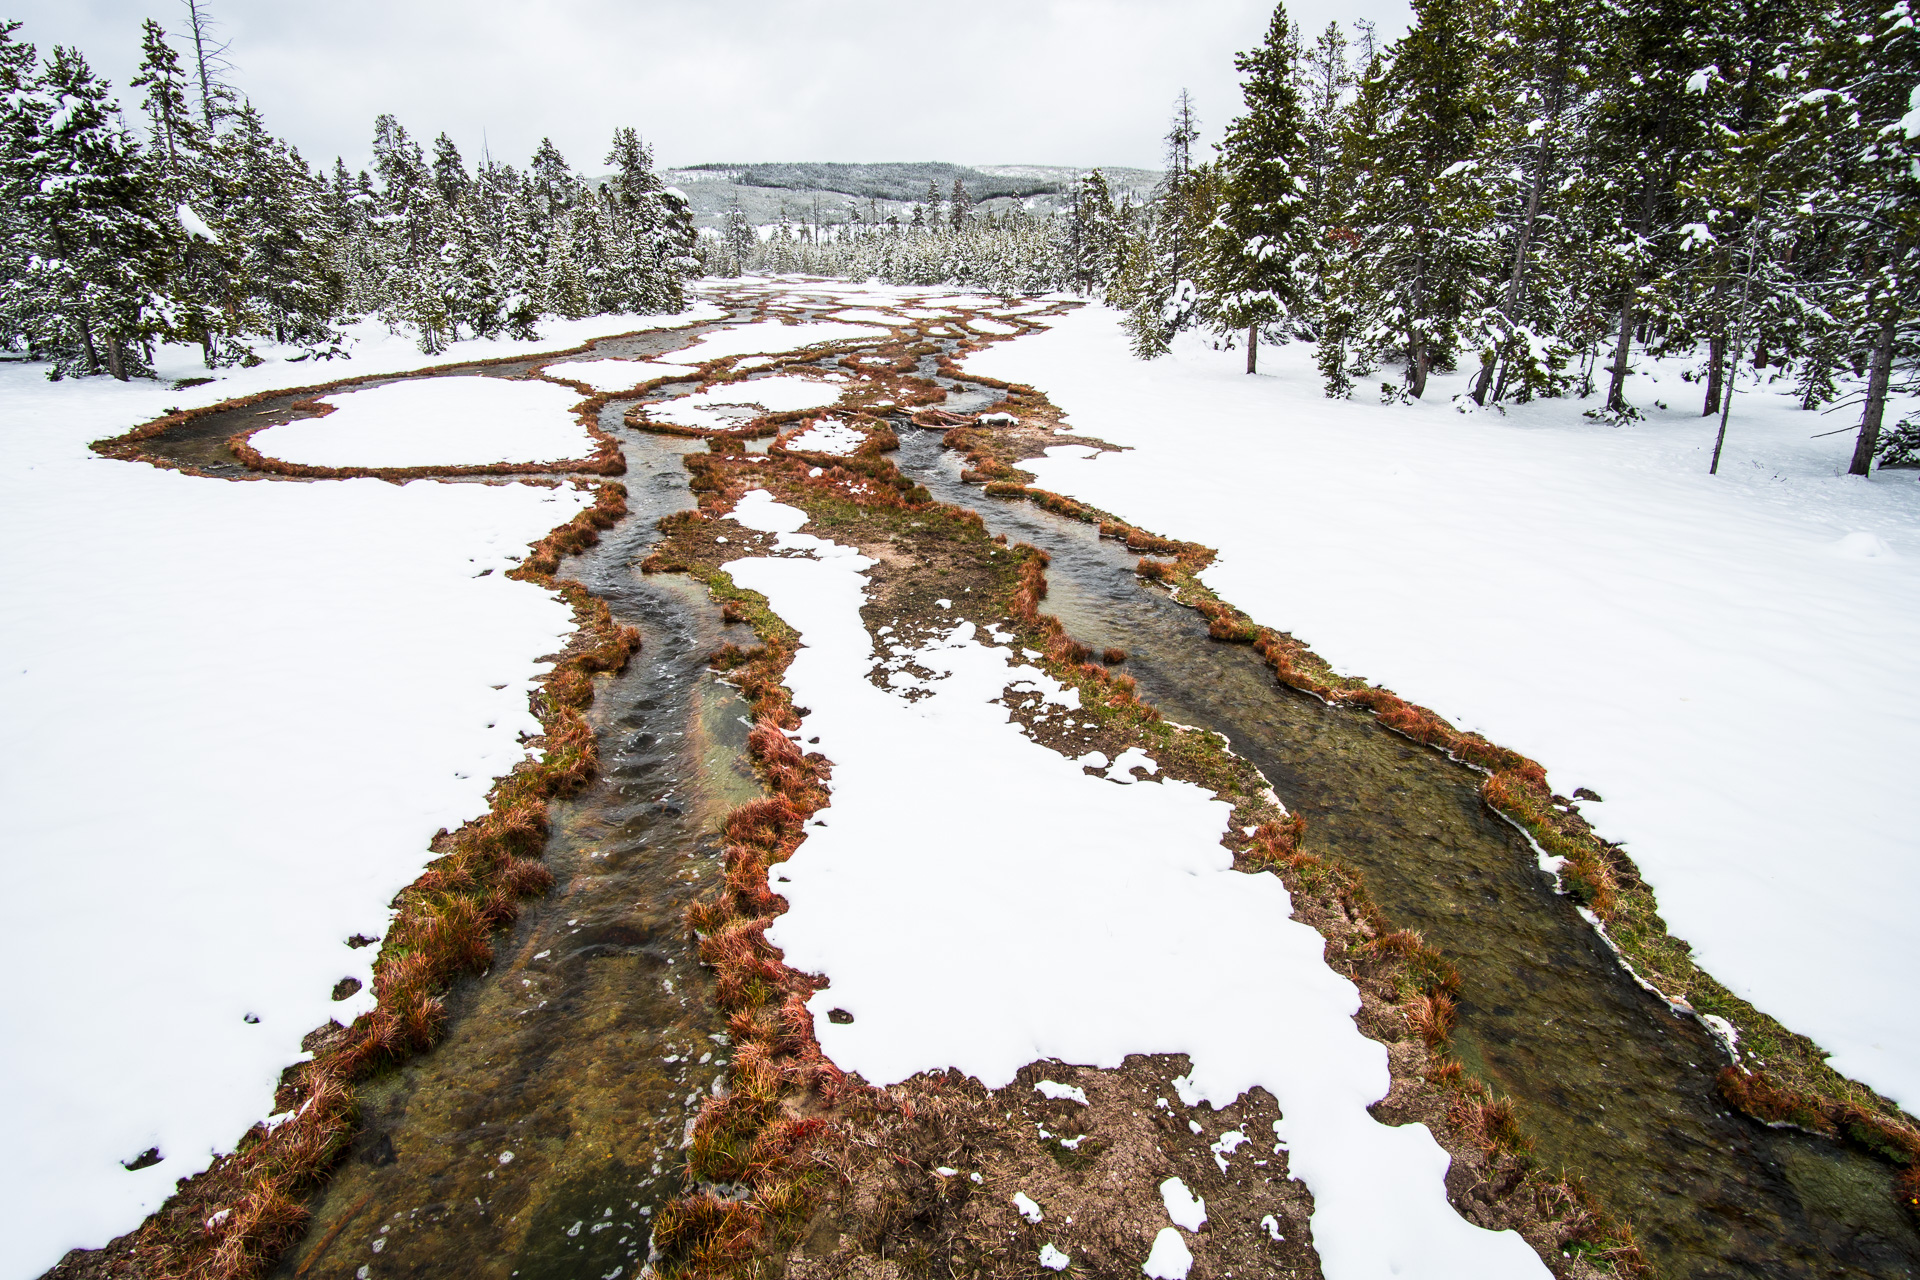 Stream snow red sedges Yellowstone National Park WY -05607